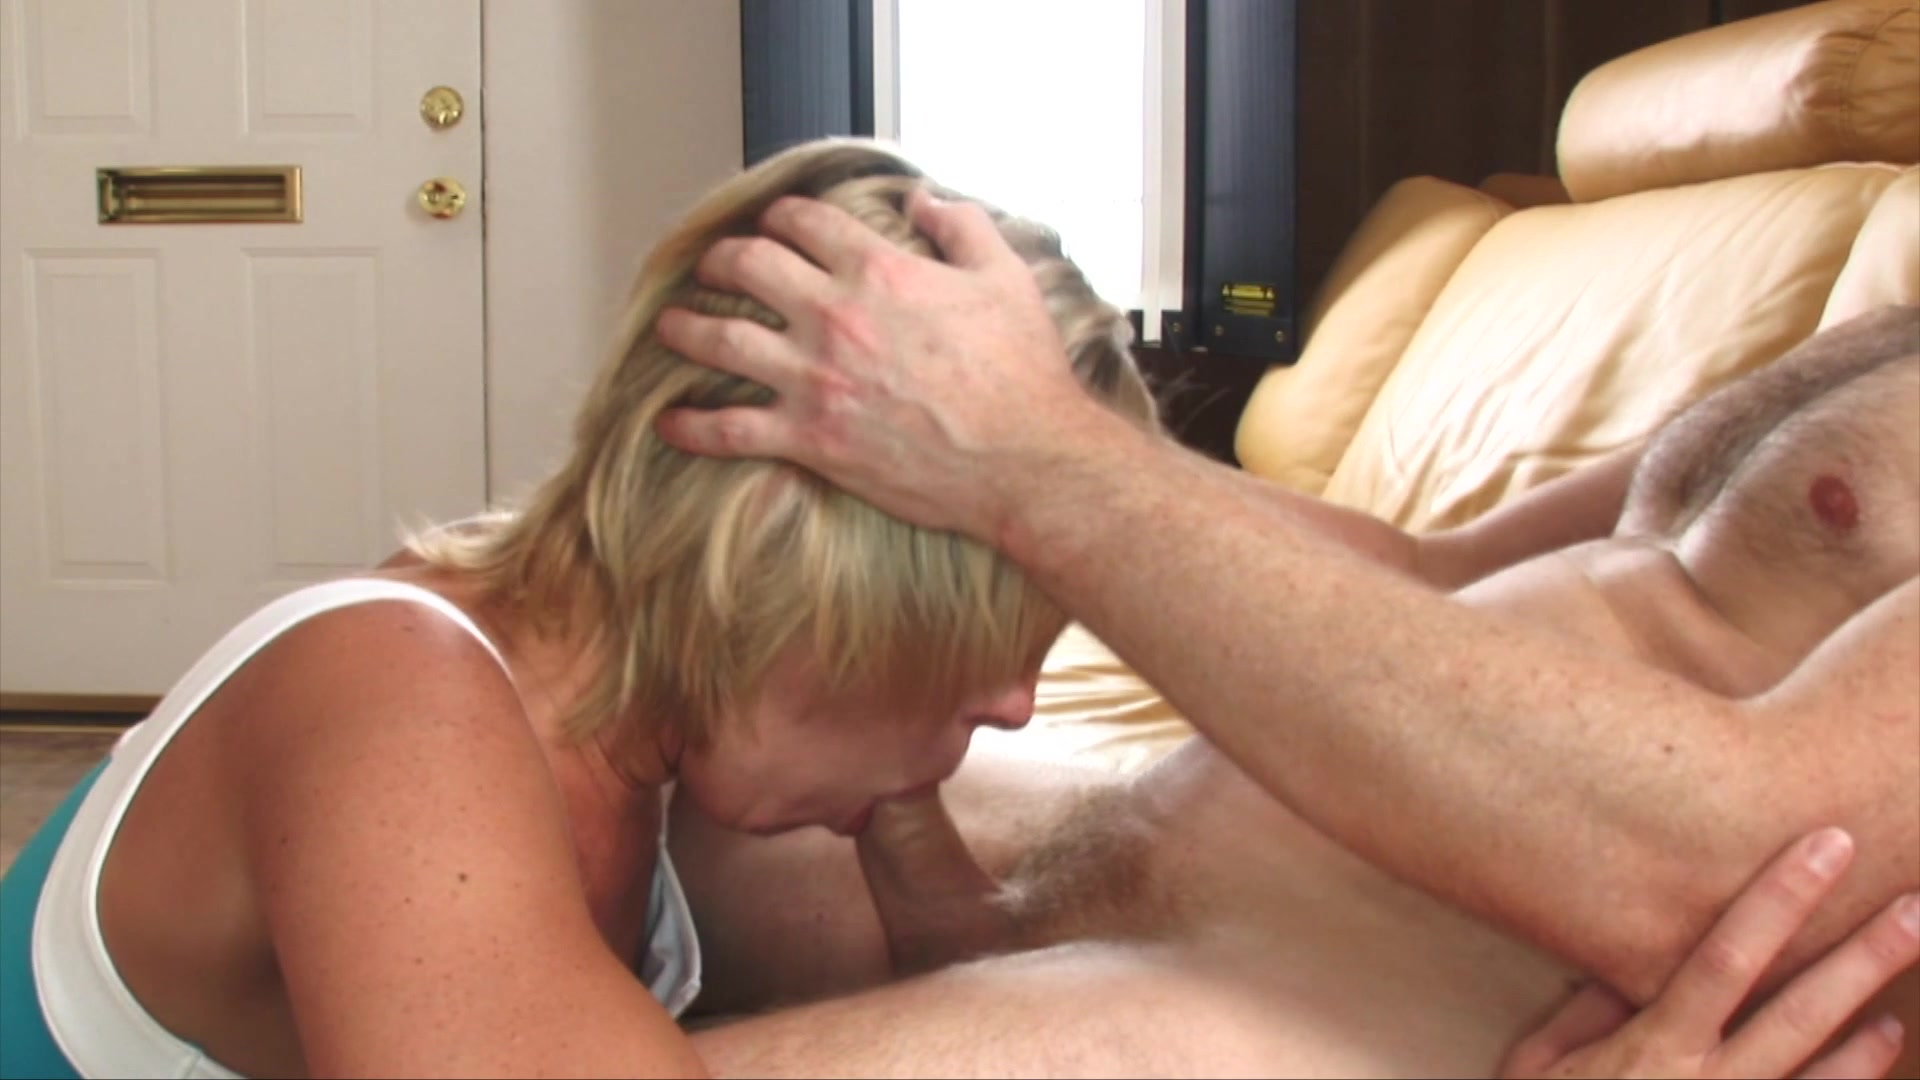 Pretty Blonde Takes a Big Cock in Her Pussy and Mouth